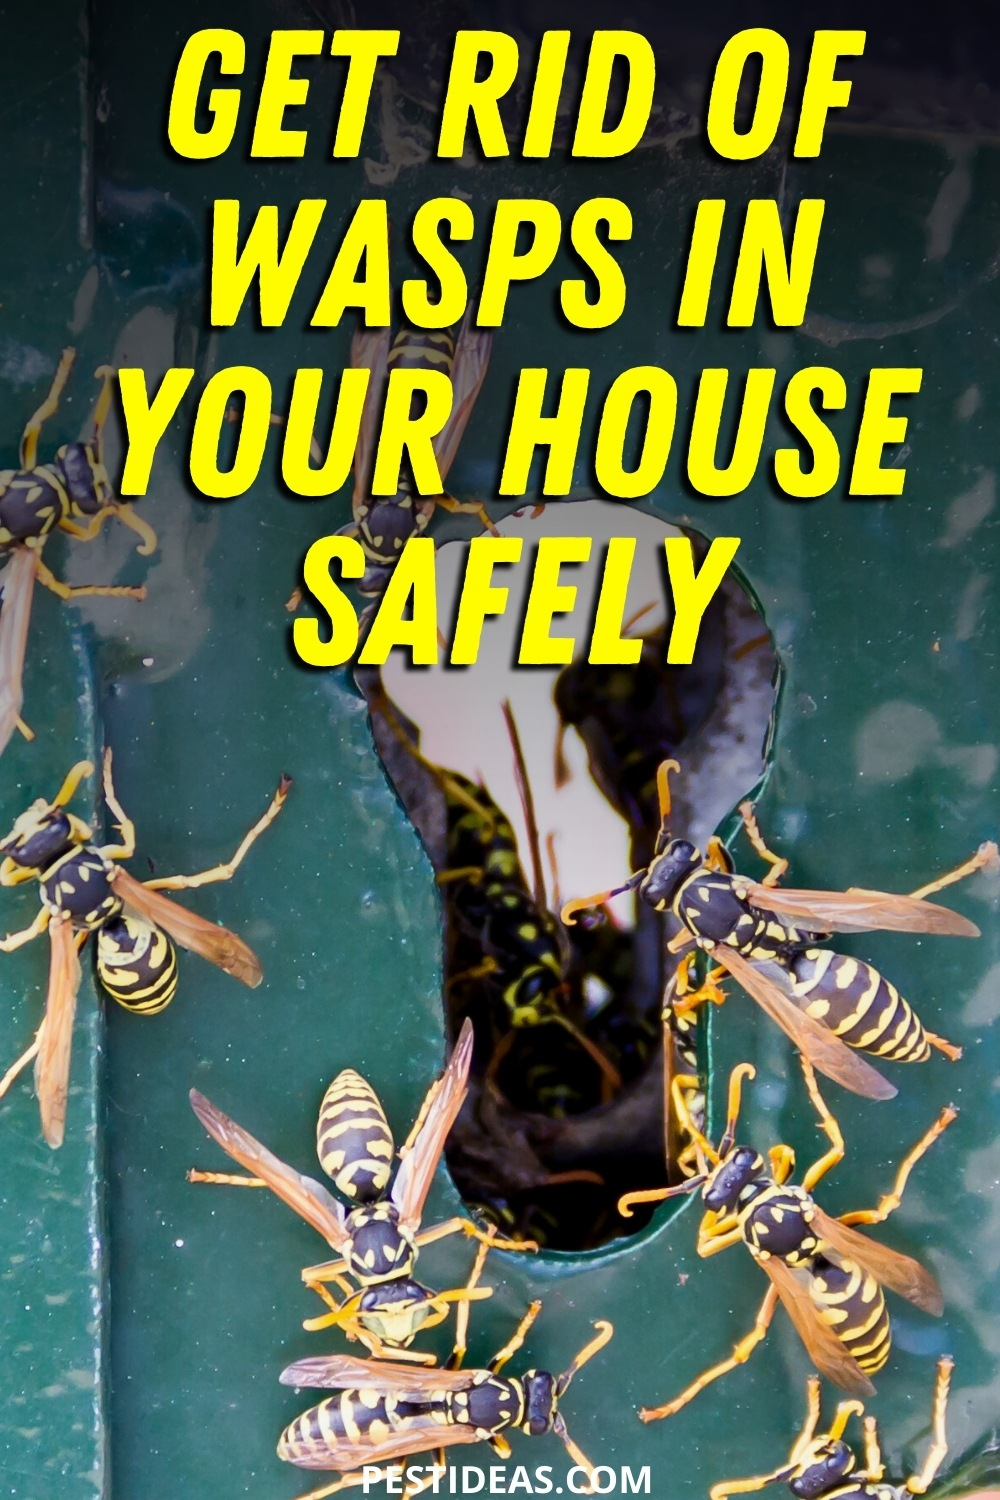 Get rid of wasps in your house safely